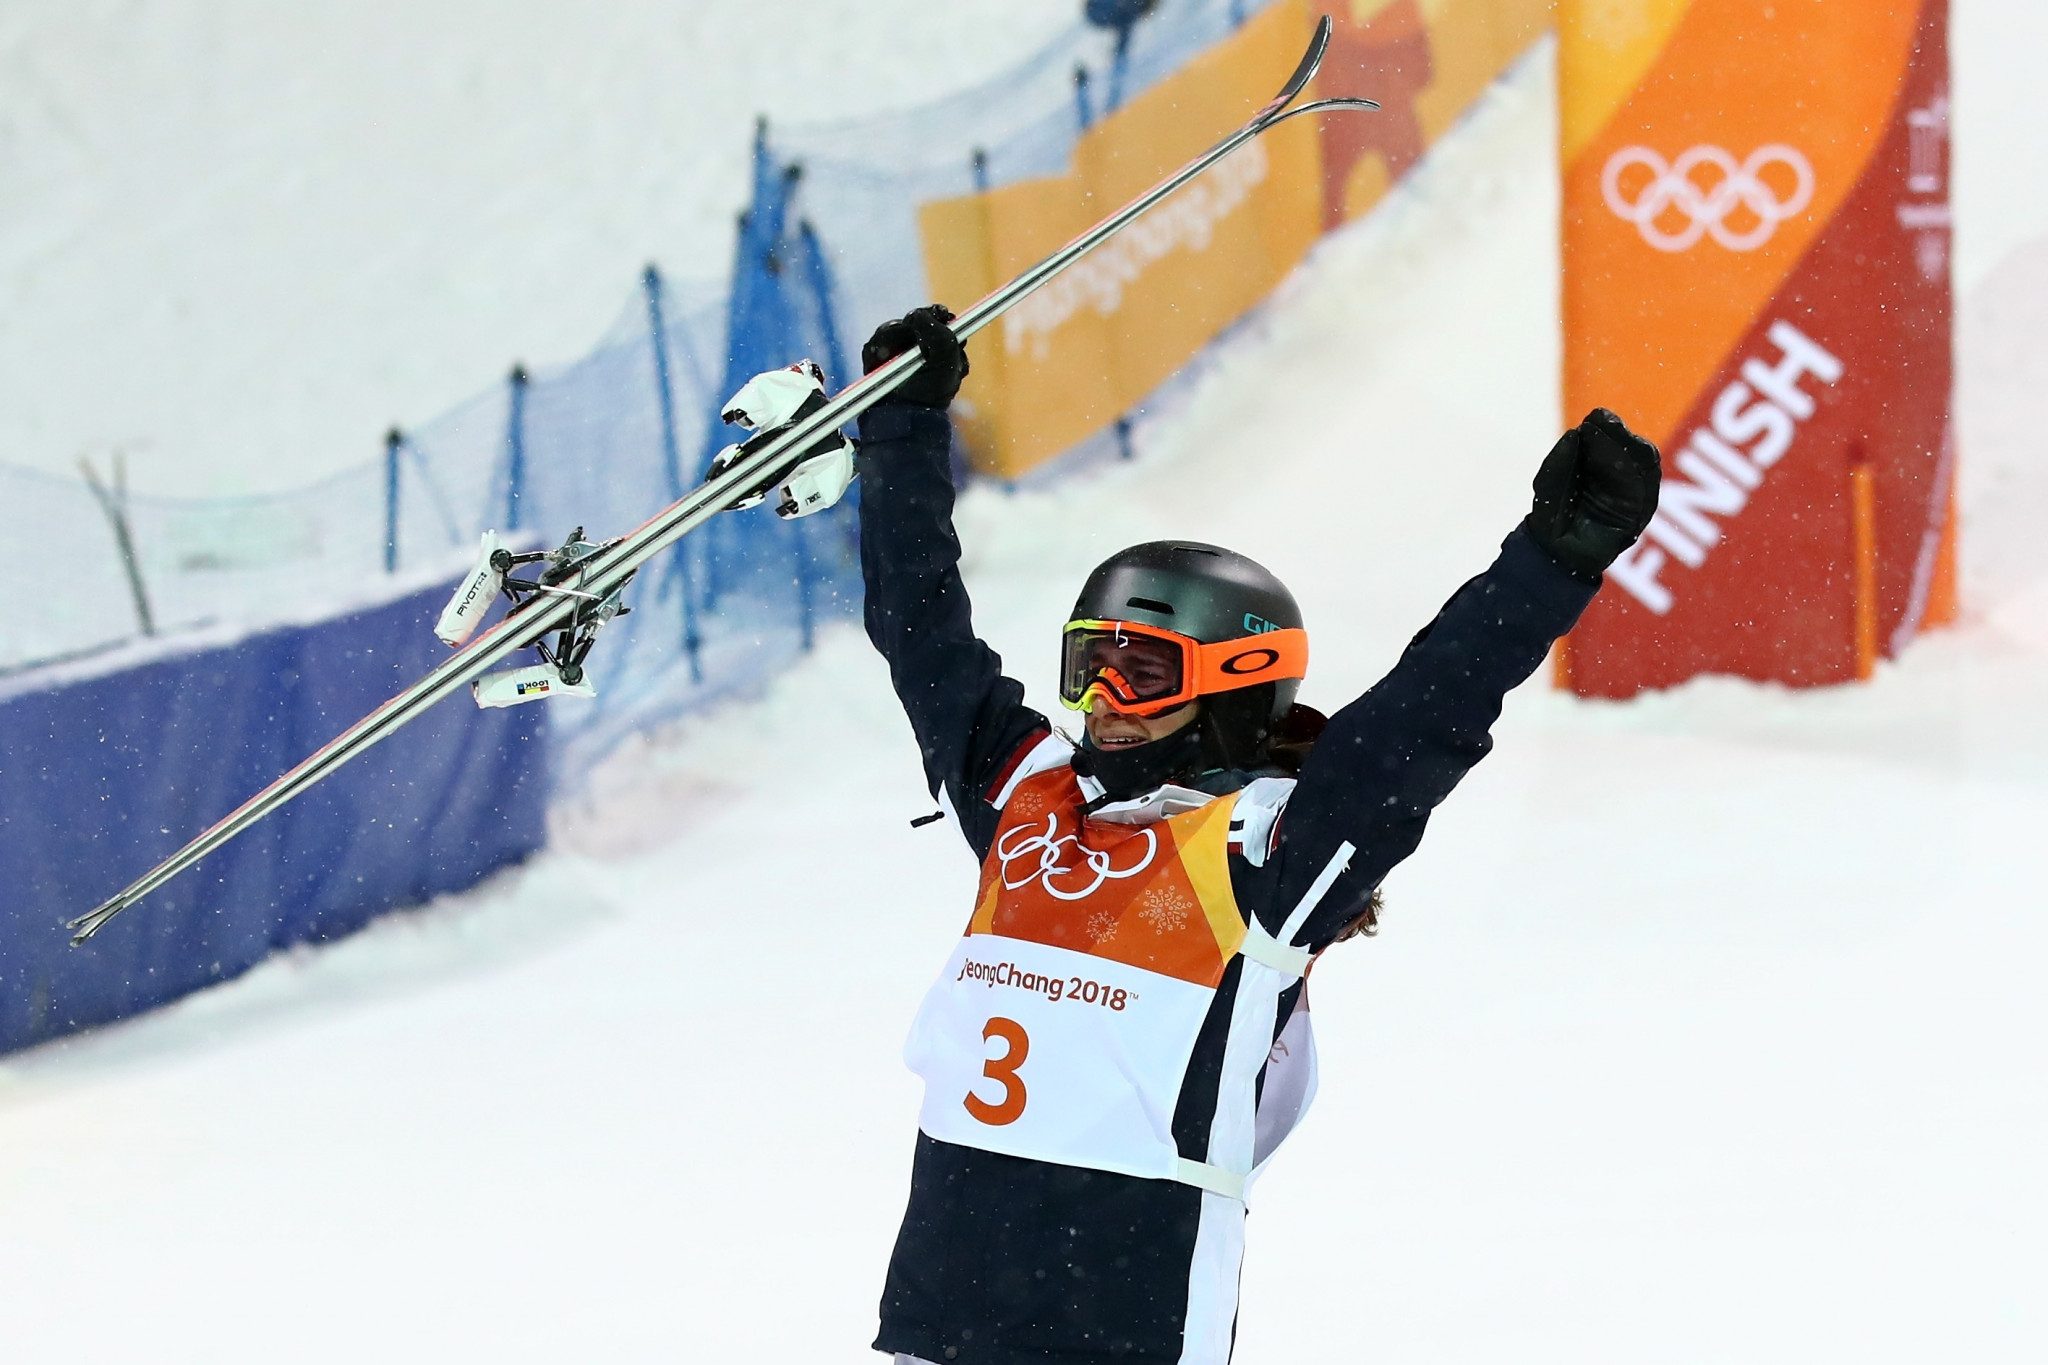 Perrine Laffont has dominated the women's moguls discipline in recent years ©Getty Images